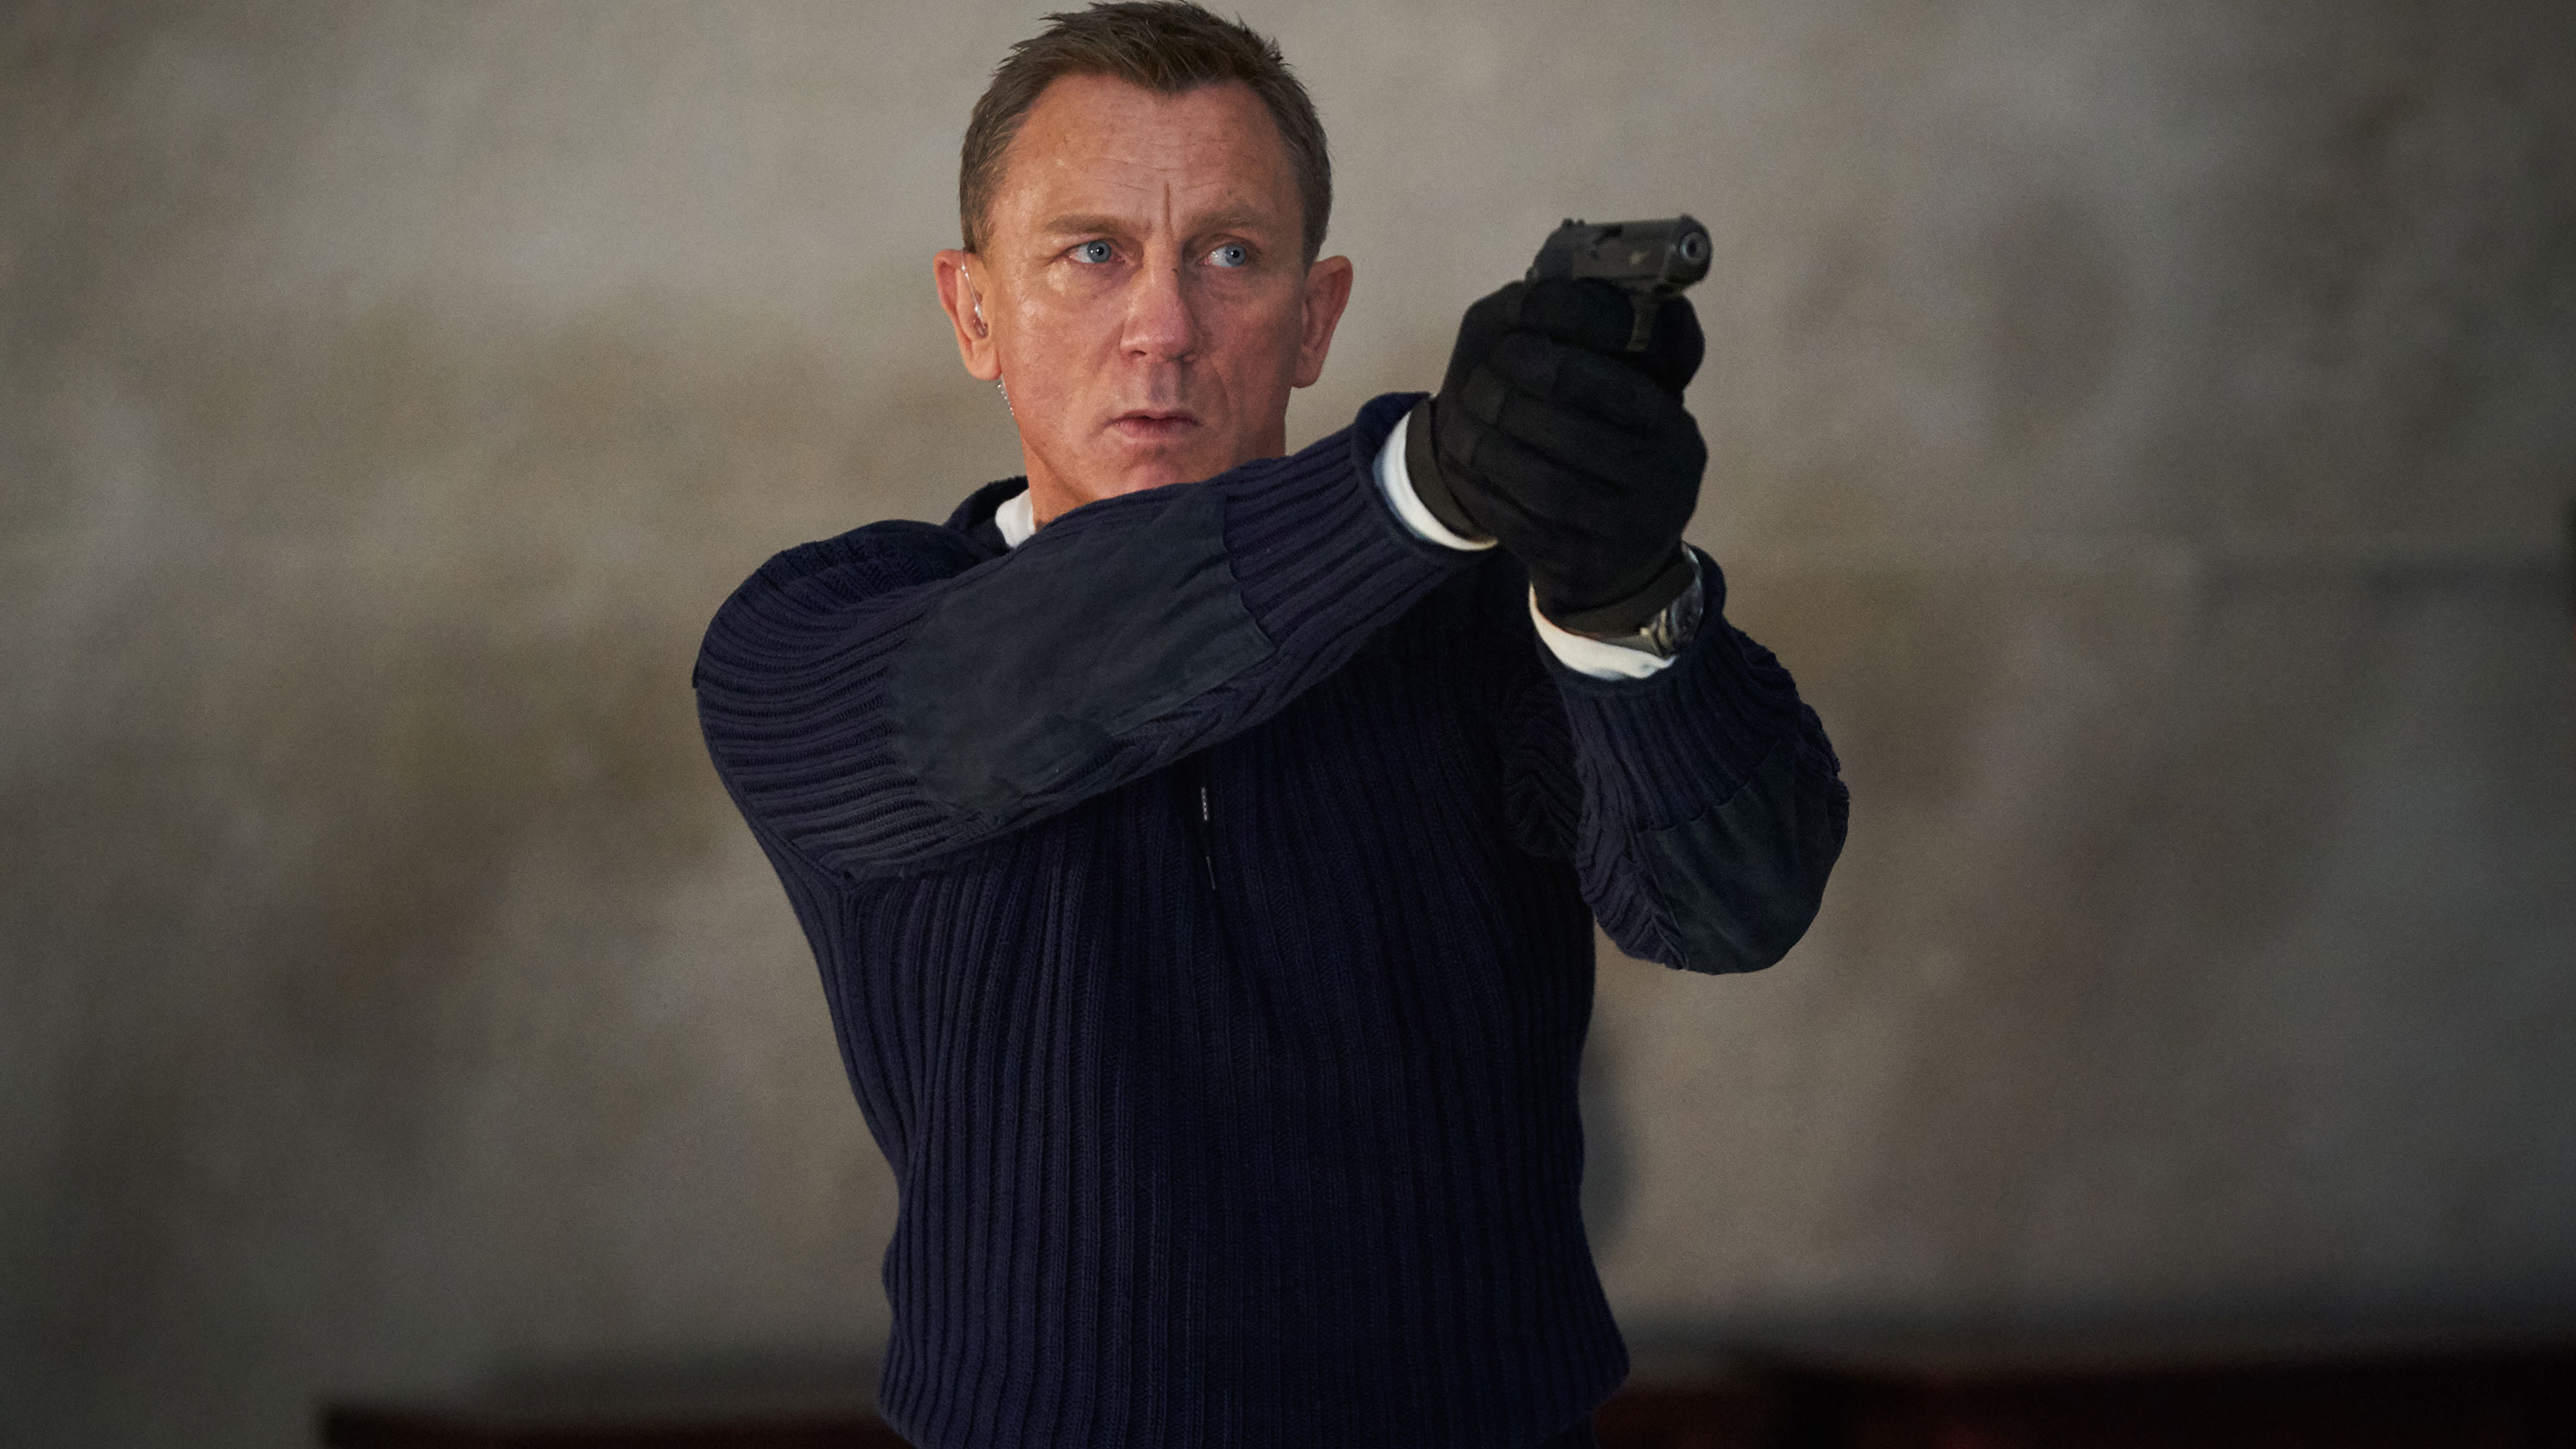 'No Time to Die,' the new James Bond film, is delayed once again